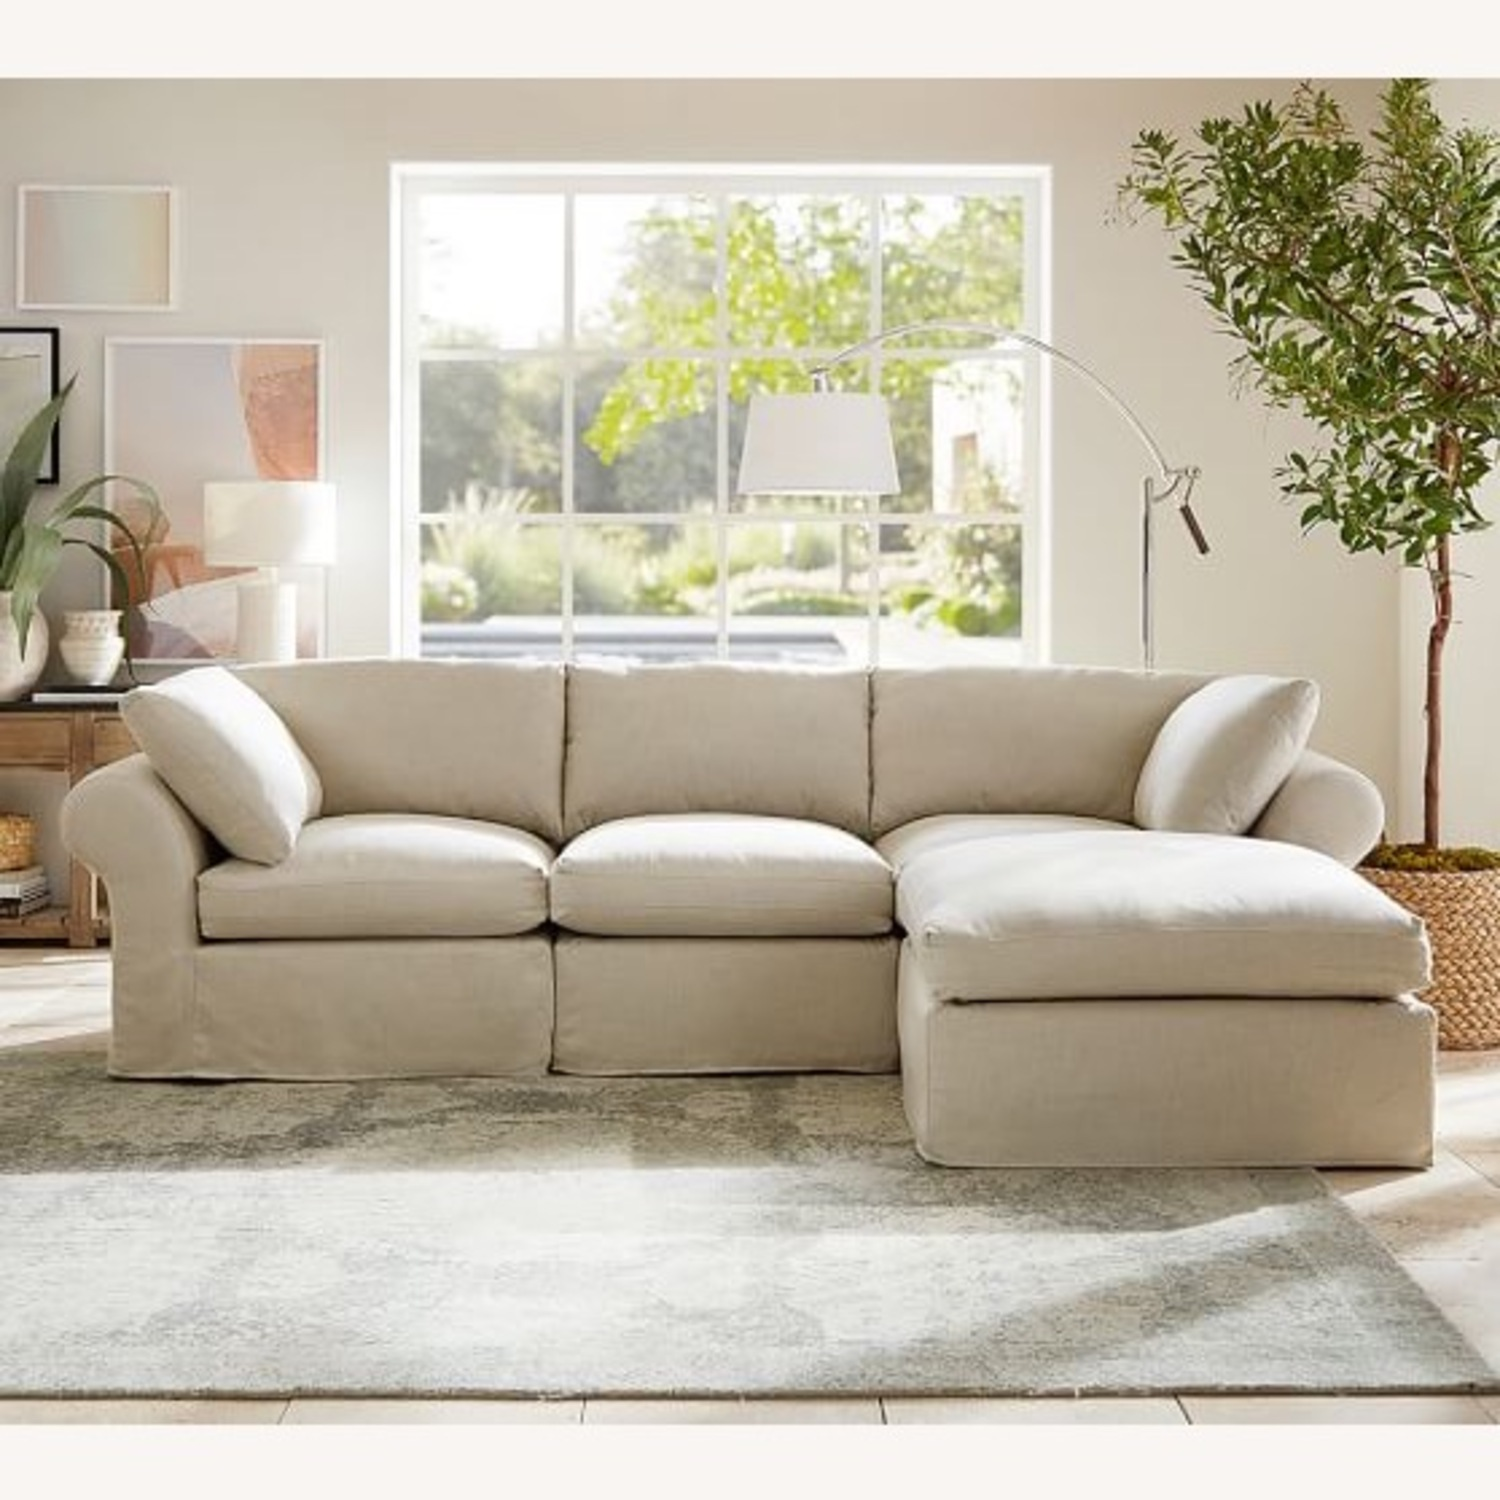 Pottery Barn Sectional - image-0